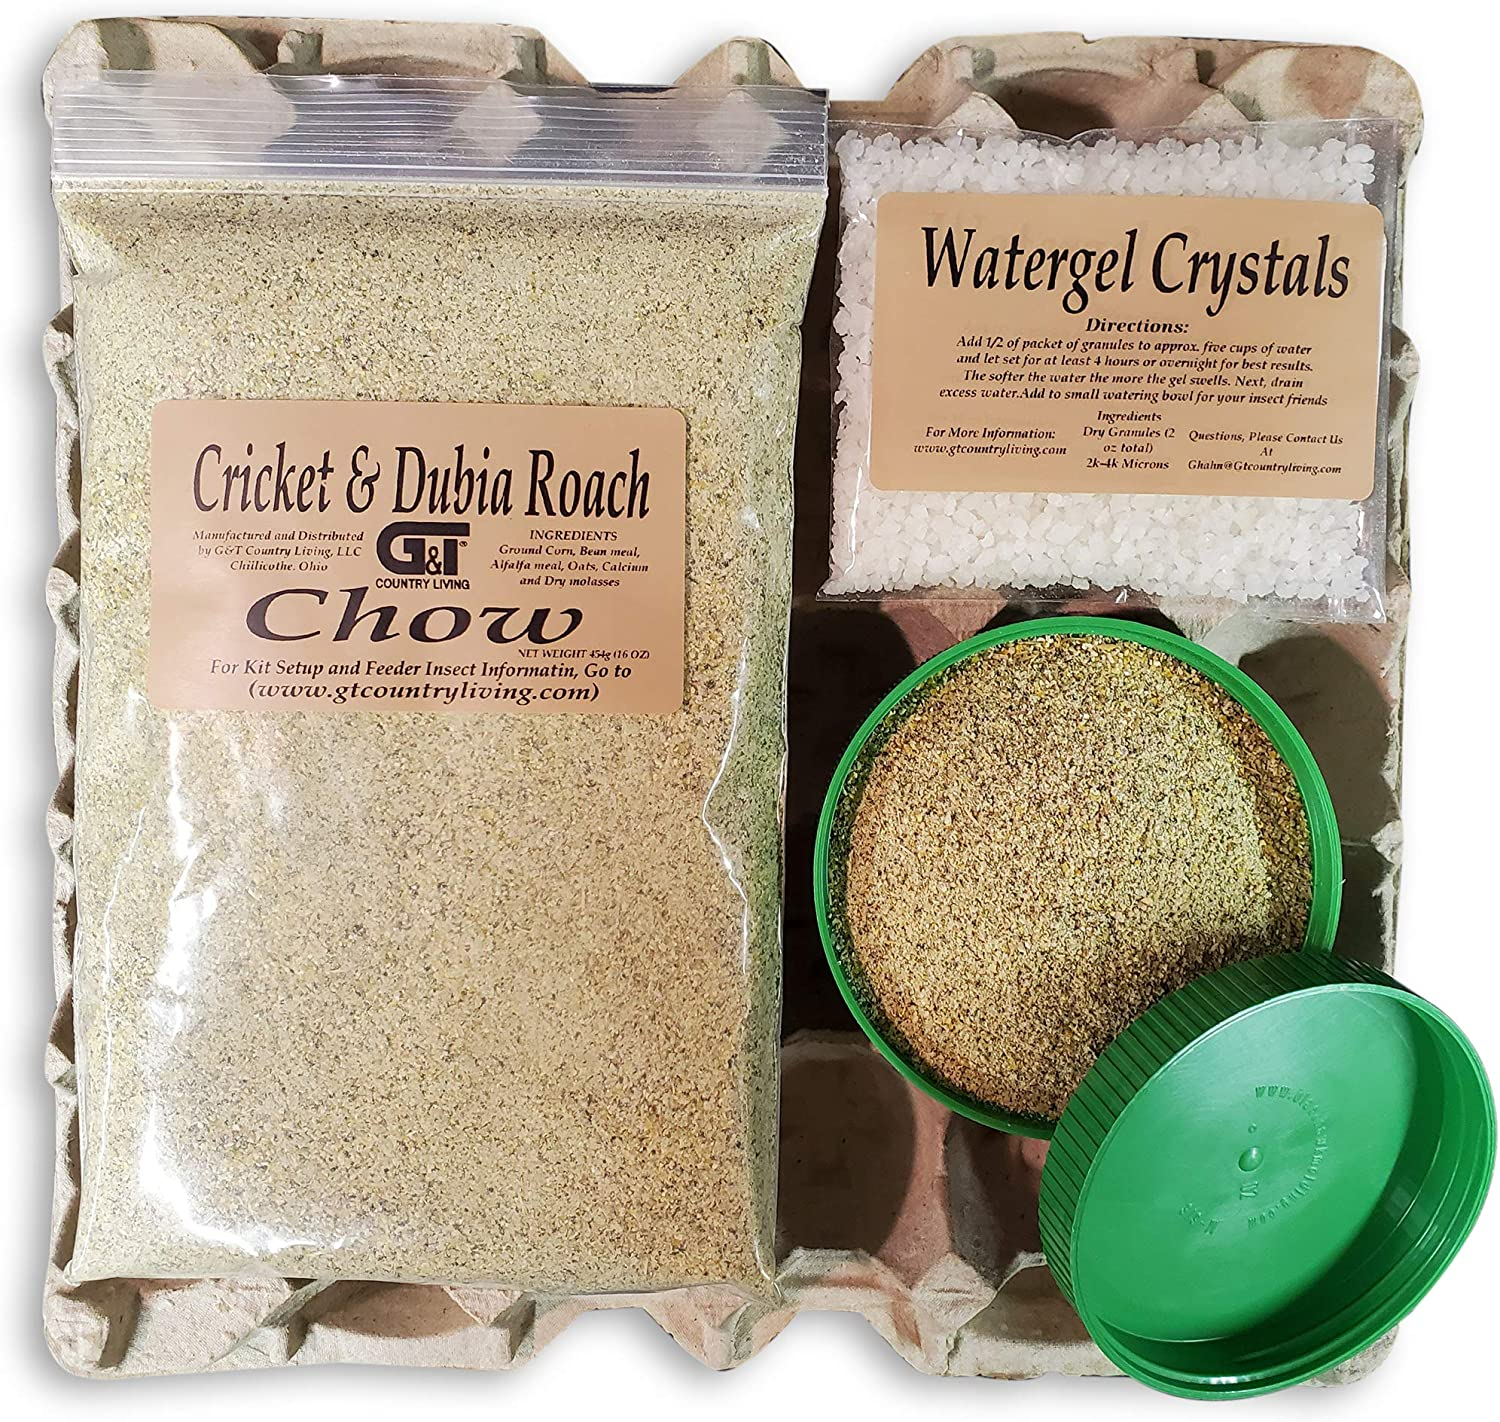 Dubia Roach Colony Starter Kit - Includes 6 Egg Flats, Premium Dubia Roach Chow Cricket Food (1 lb), 1-(2 oz Packet) Water Gel Granules (2 oz Total), 2- Lids| Raise Dubia Roaches Crickets